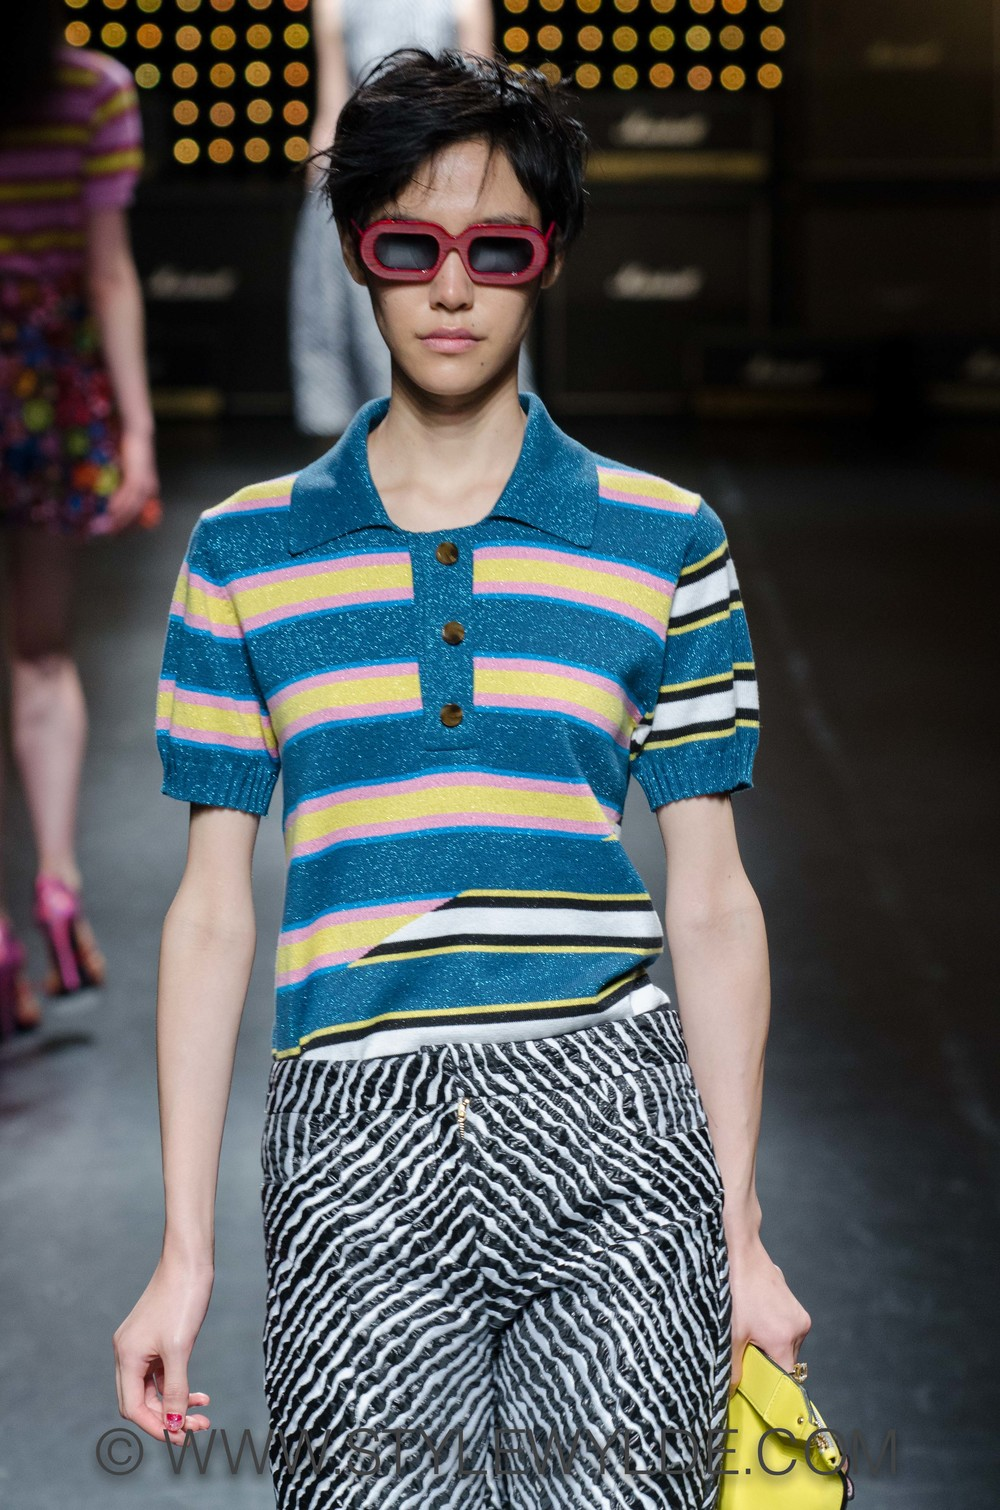 stylewylde_HouseofHolland_SS15 (60 of 68).jpg